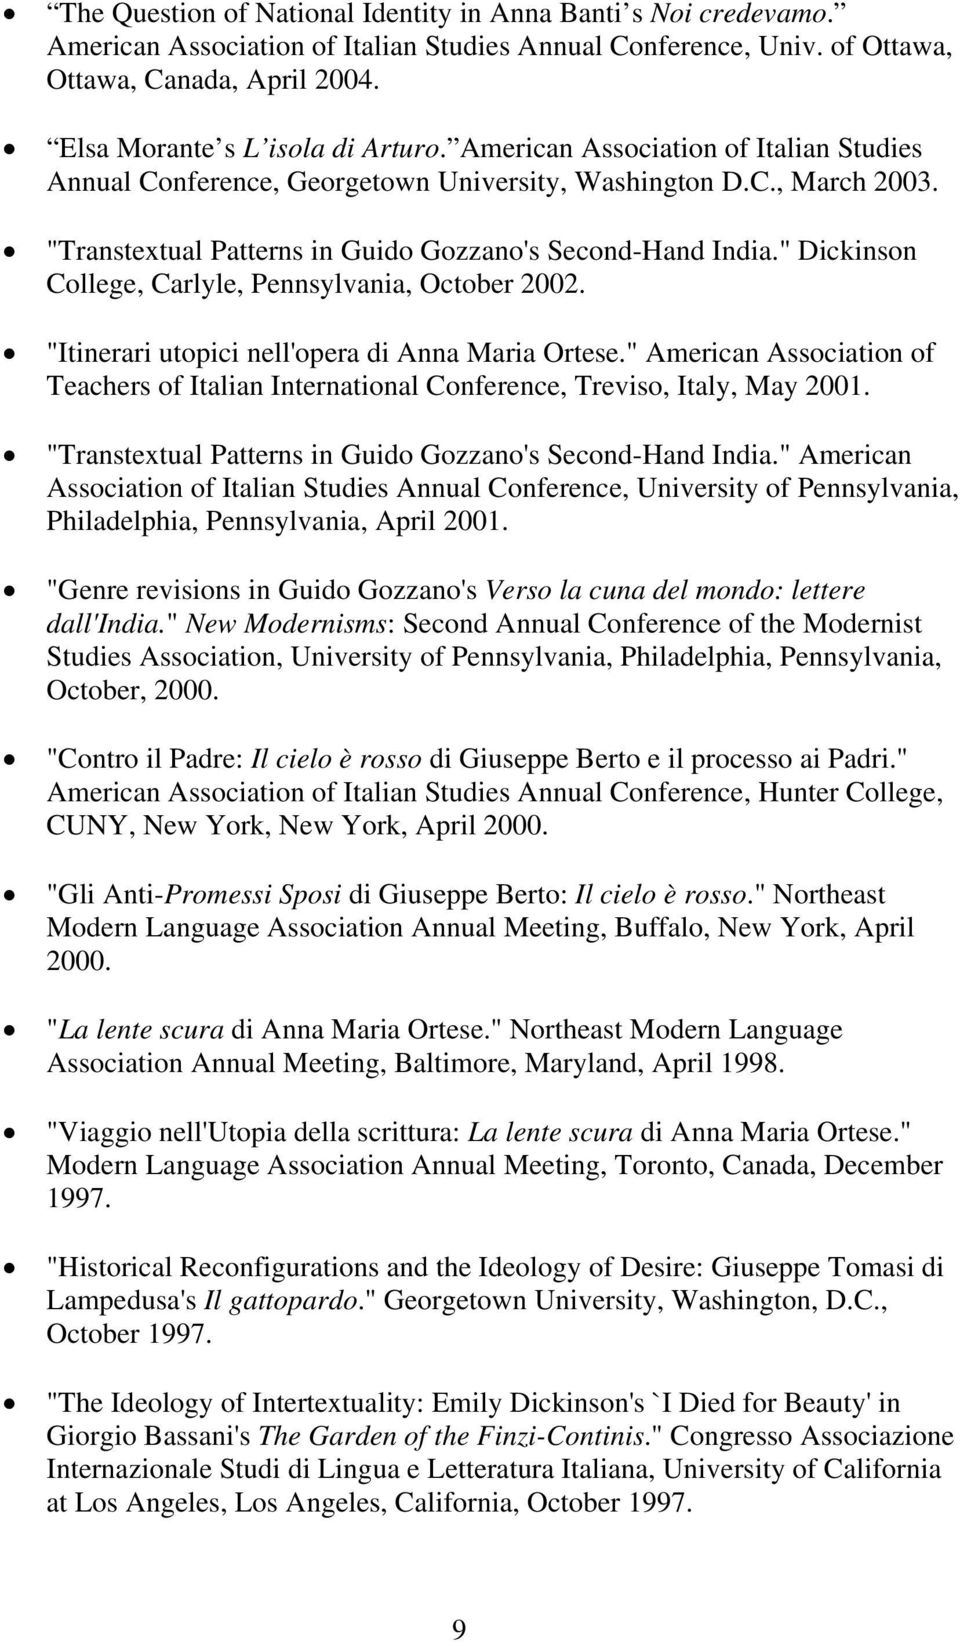 """Transtextual Patterns in Guido Gozzano's Second-Hand India."" Dickinson College, Carlyle, Pennsylvania, October 2002. ""Itinerari utopici nell'opera di Anna Maria Ortese."